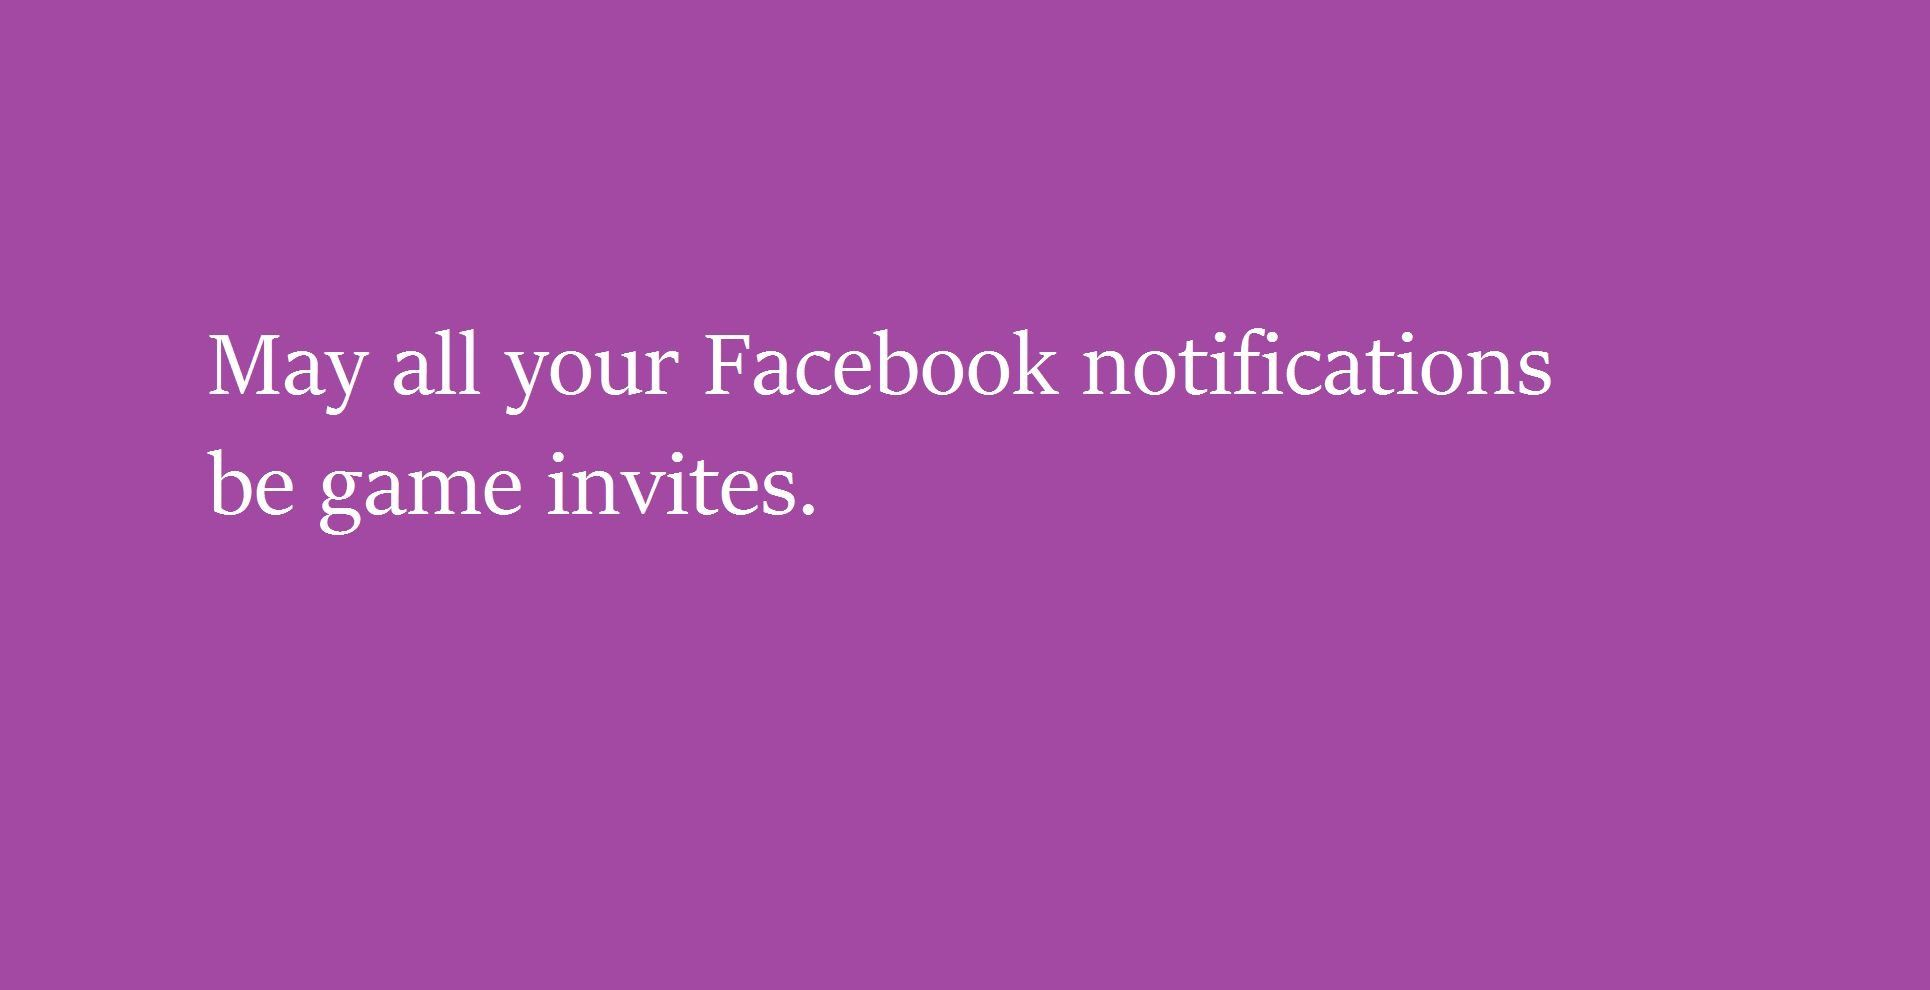 May All Your Facebook Notifications Be Game Invites Funny Insults Facebook Notifications Best Insults